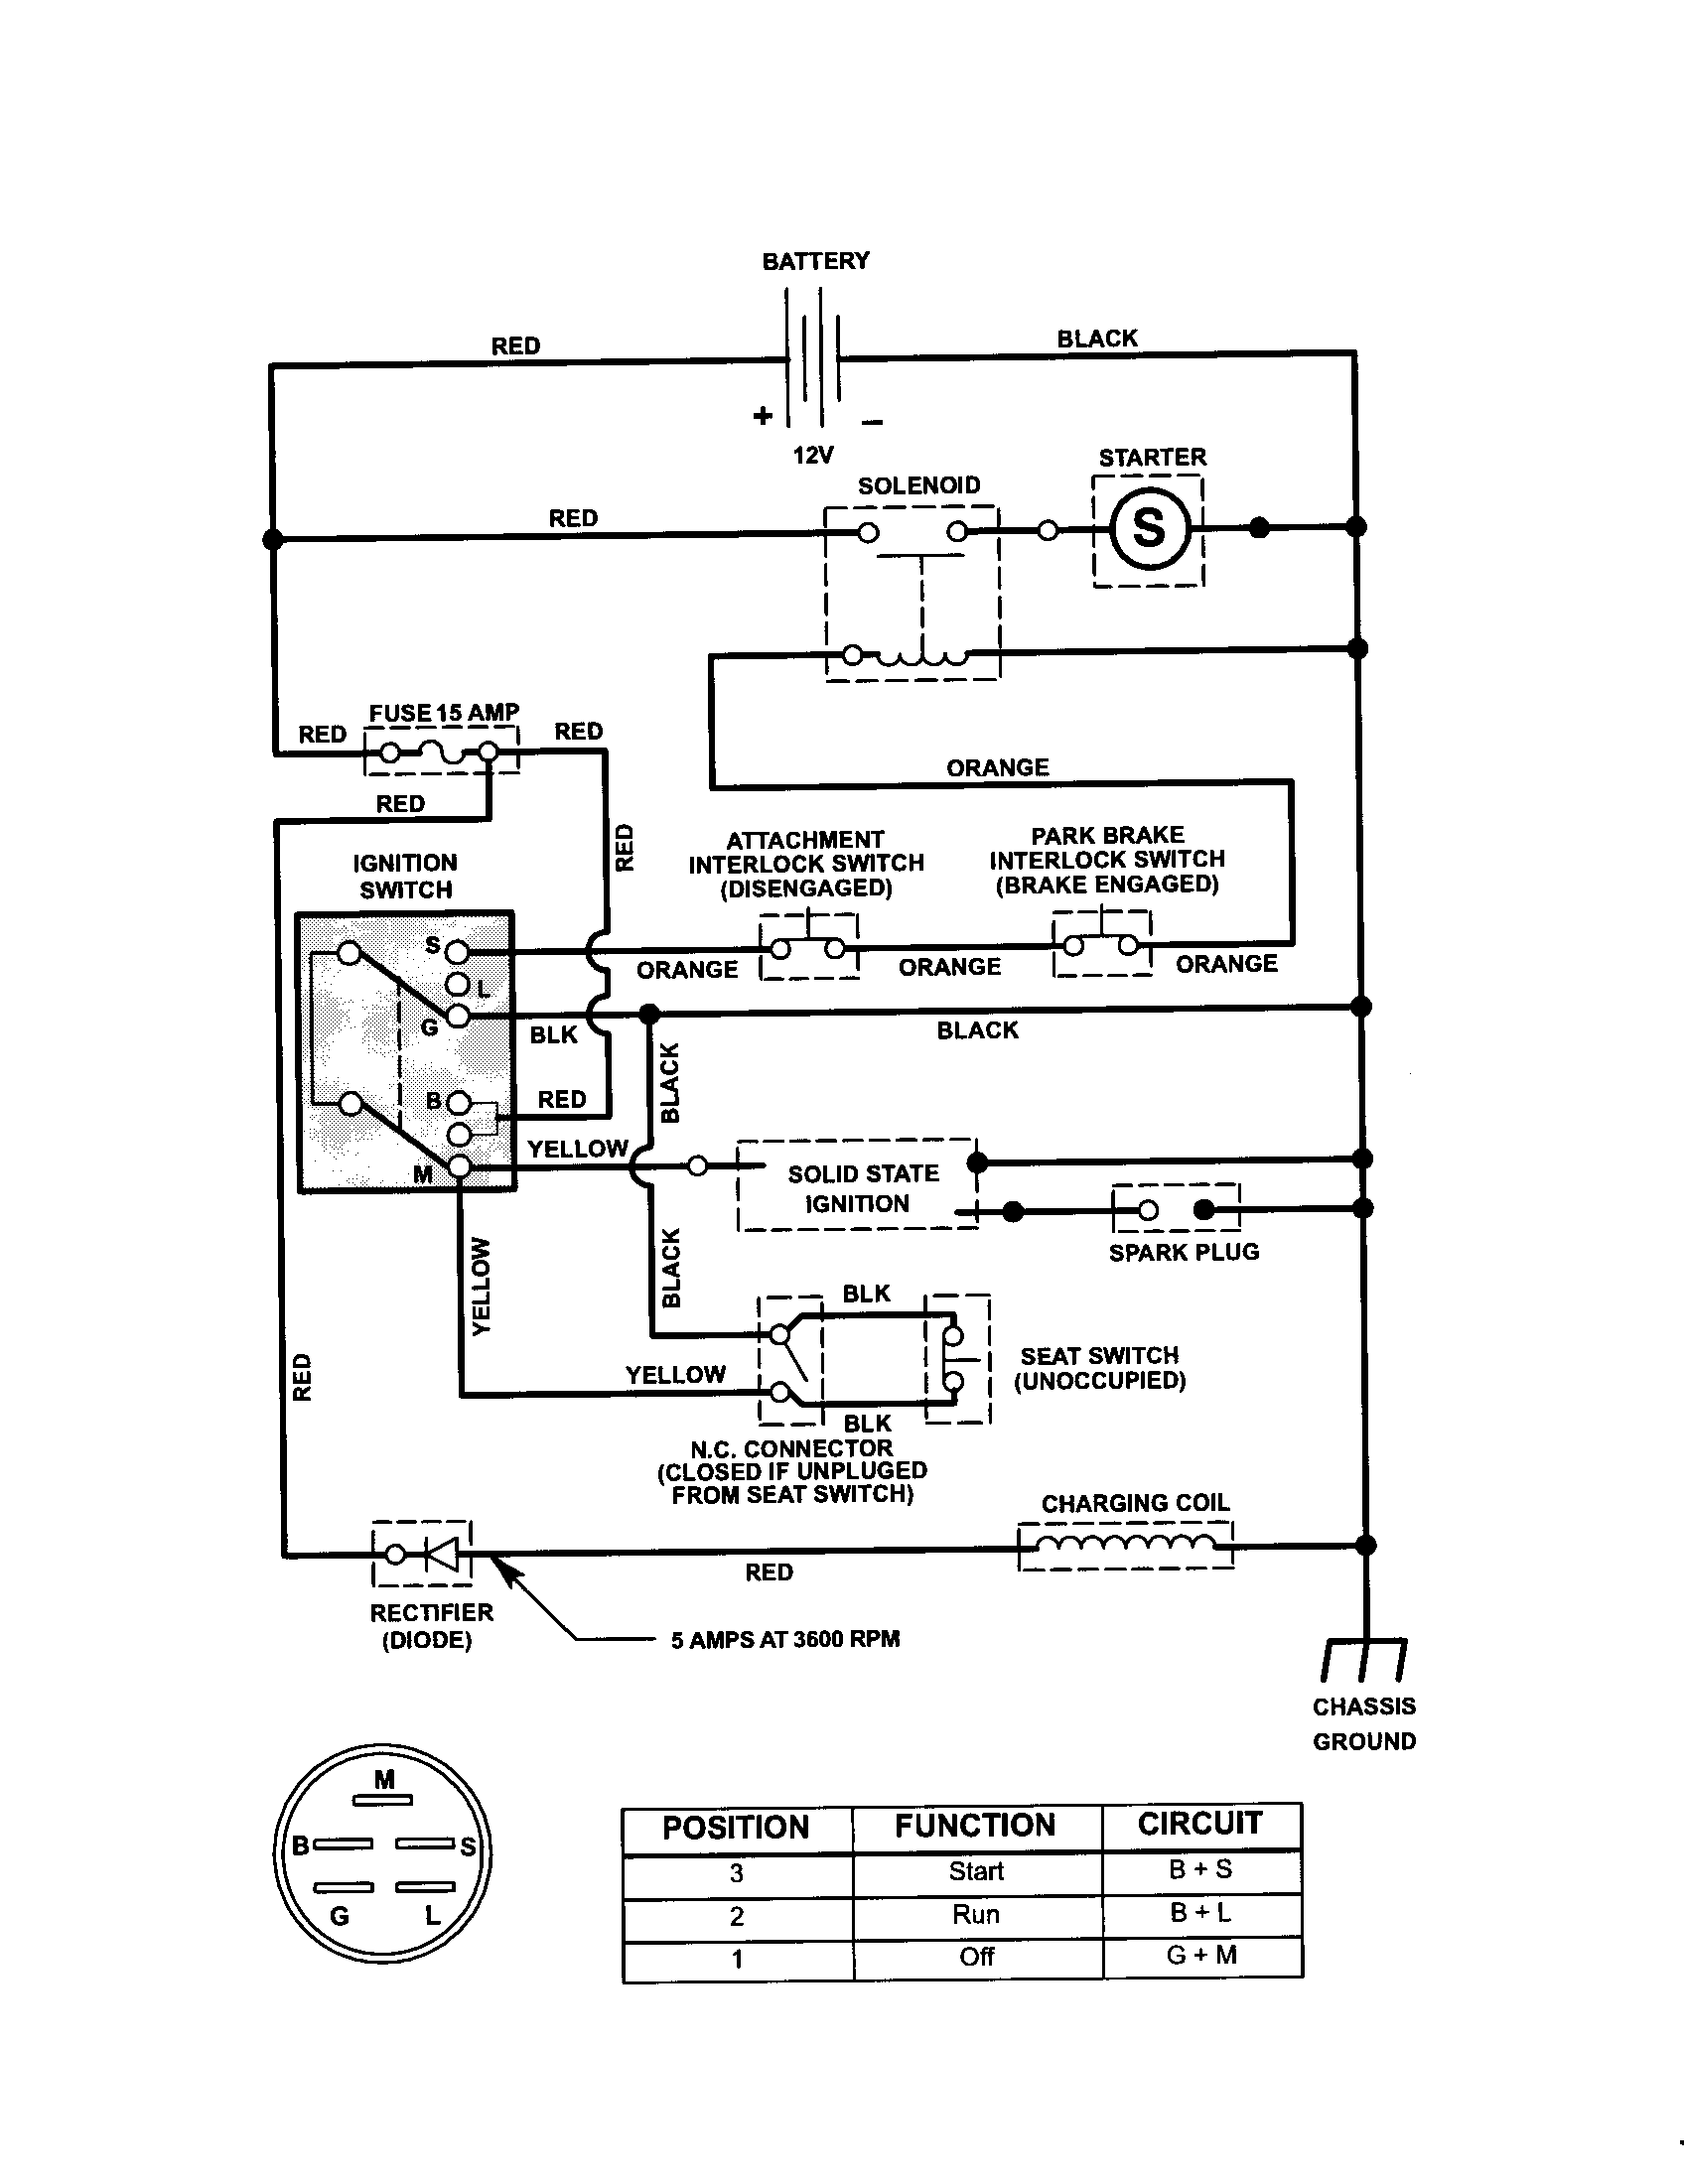 small resolution of craftsman riding mower electrical diagram pictures of craftsman sears craftsman garage door opener wiring diagram craftsman